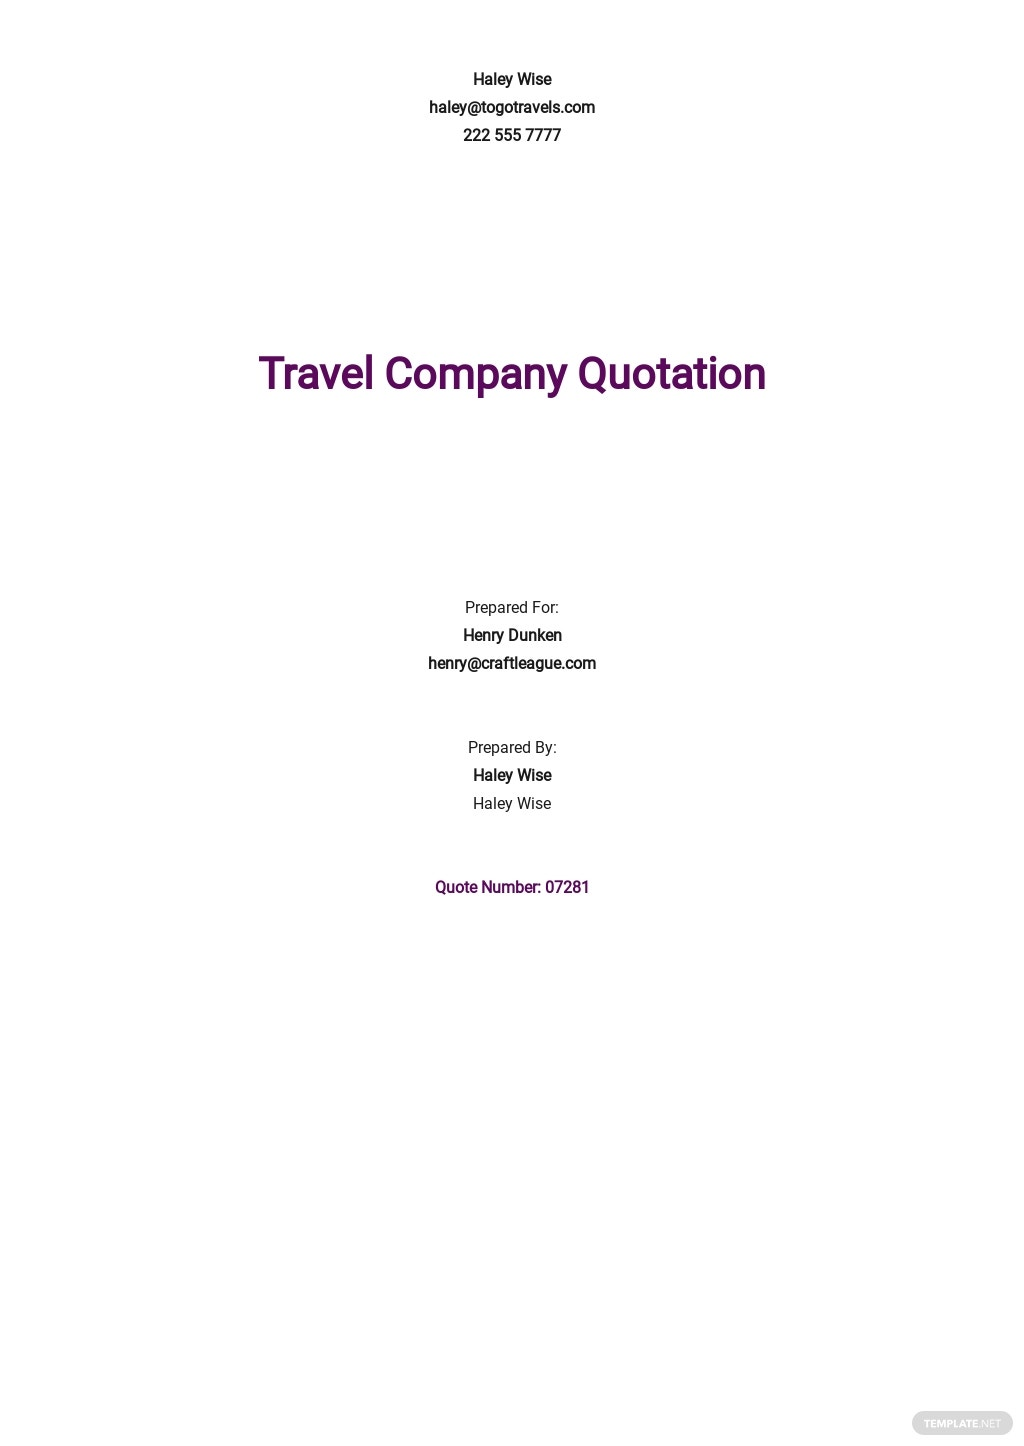 Travel Company Quotation Template